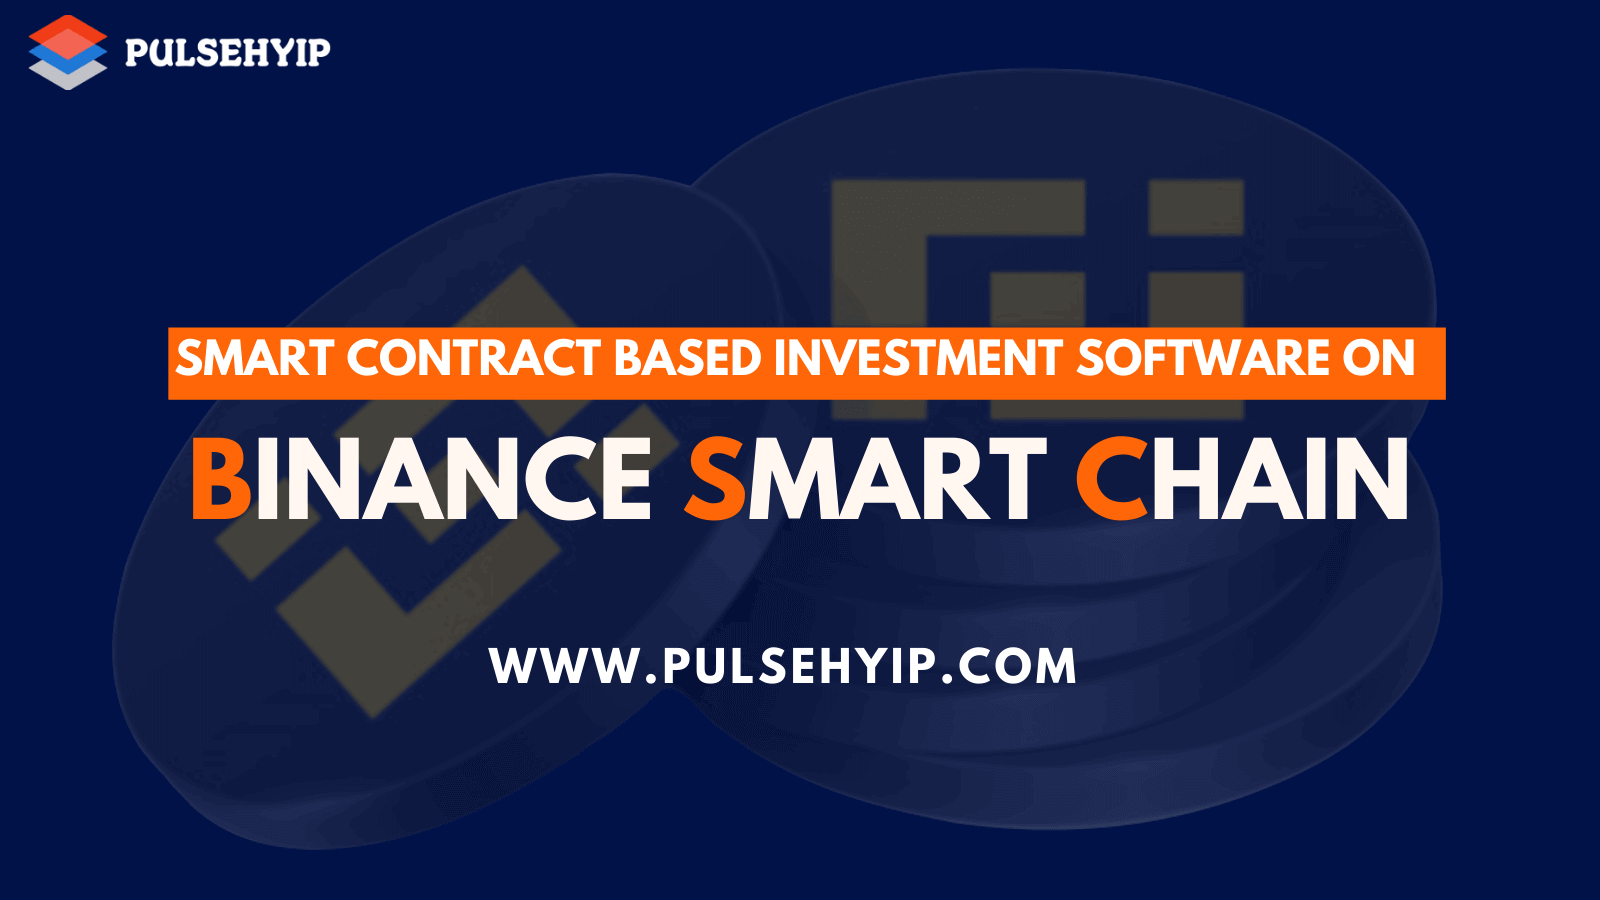 Smart Contract Investment Software on Binance Smart Chain